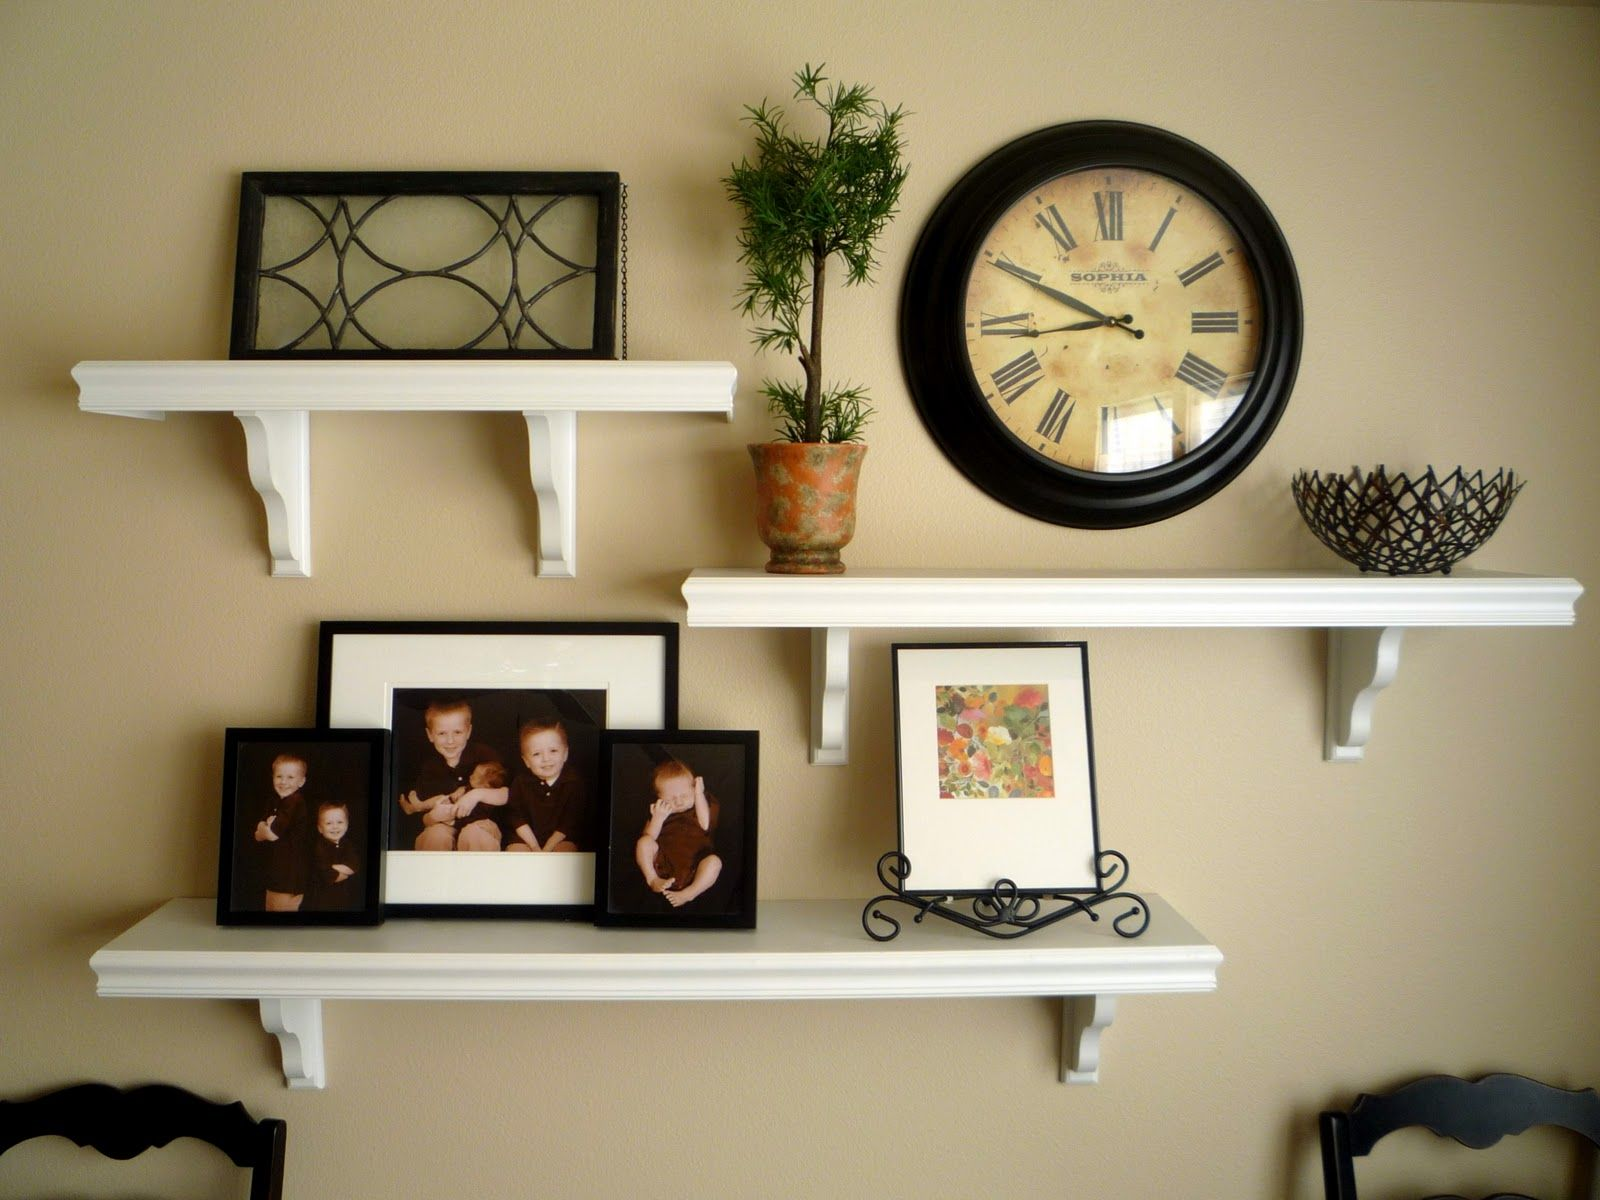 Living room wall shelves decorating ideas - Picture And Shelves On Wall Together It All Started After Being Inspired By Thrifty Decor